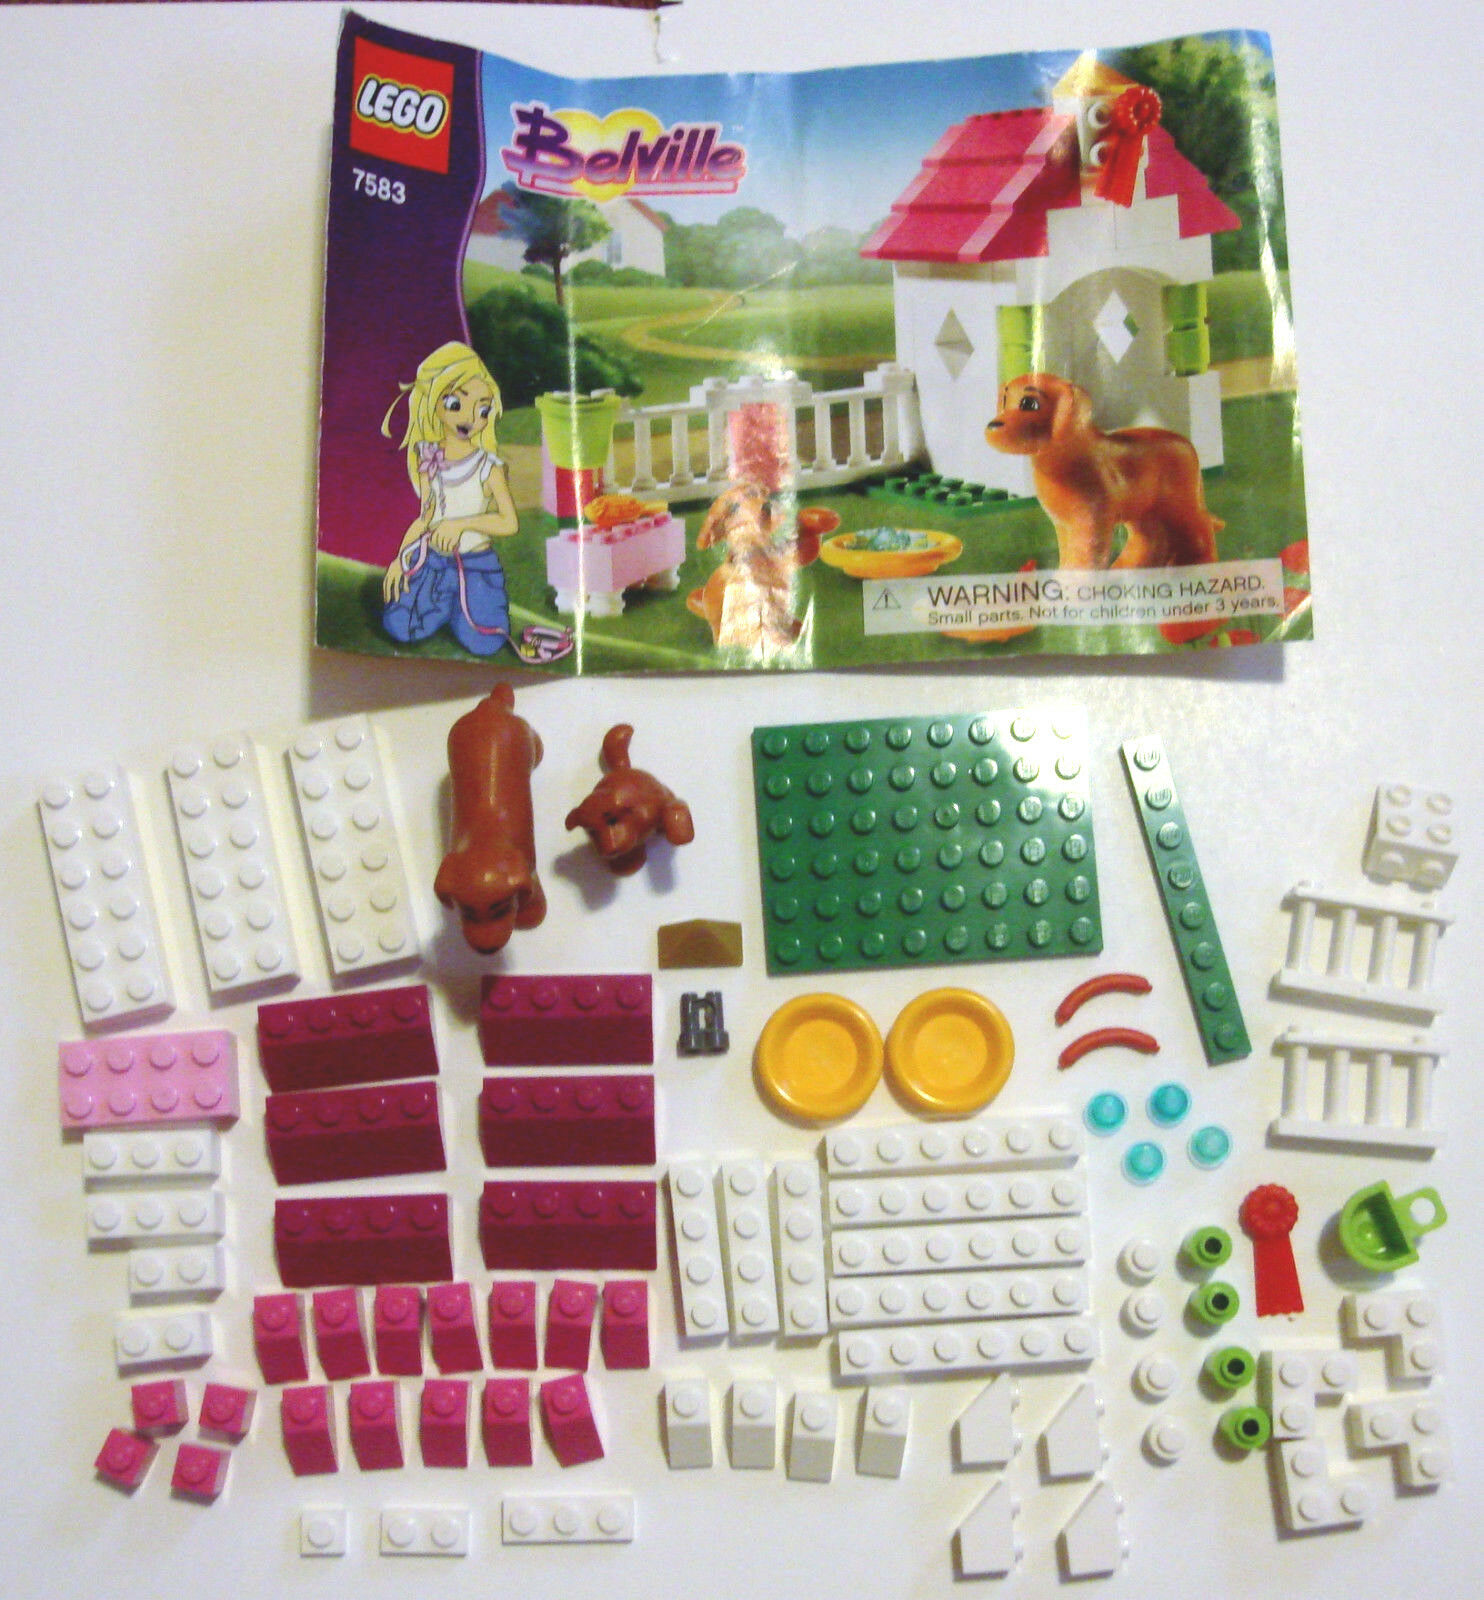 Lego Belville 7583 Playful Puppy Dog House Set Instructions Retired